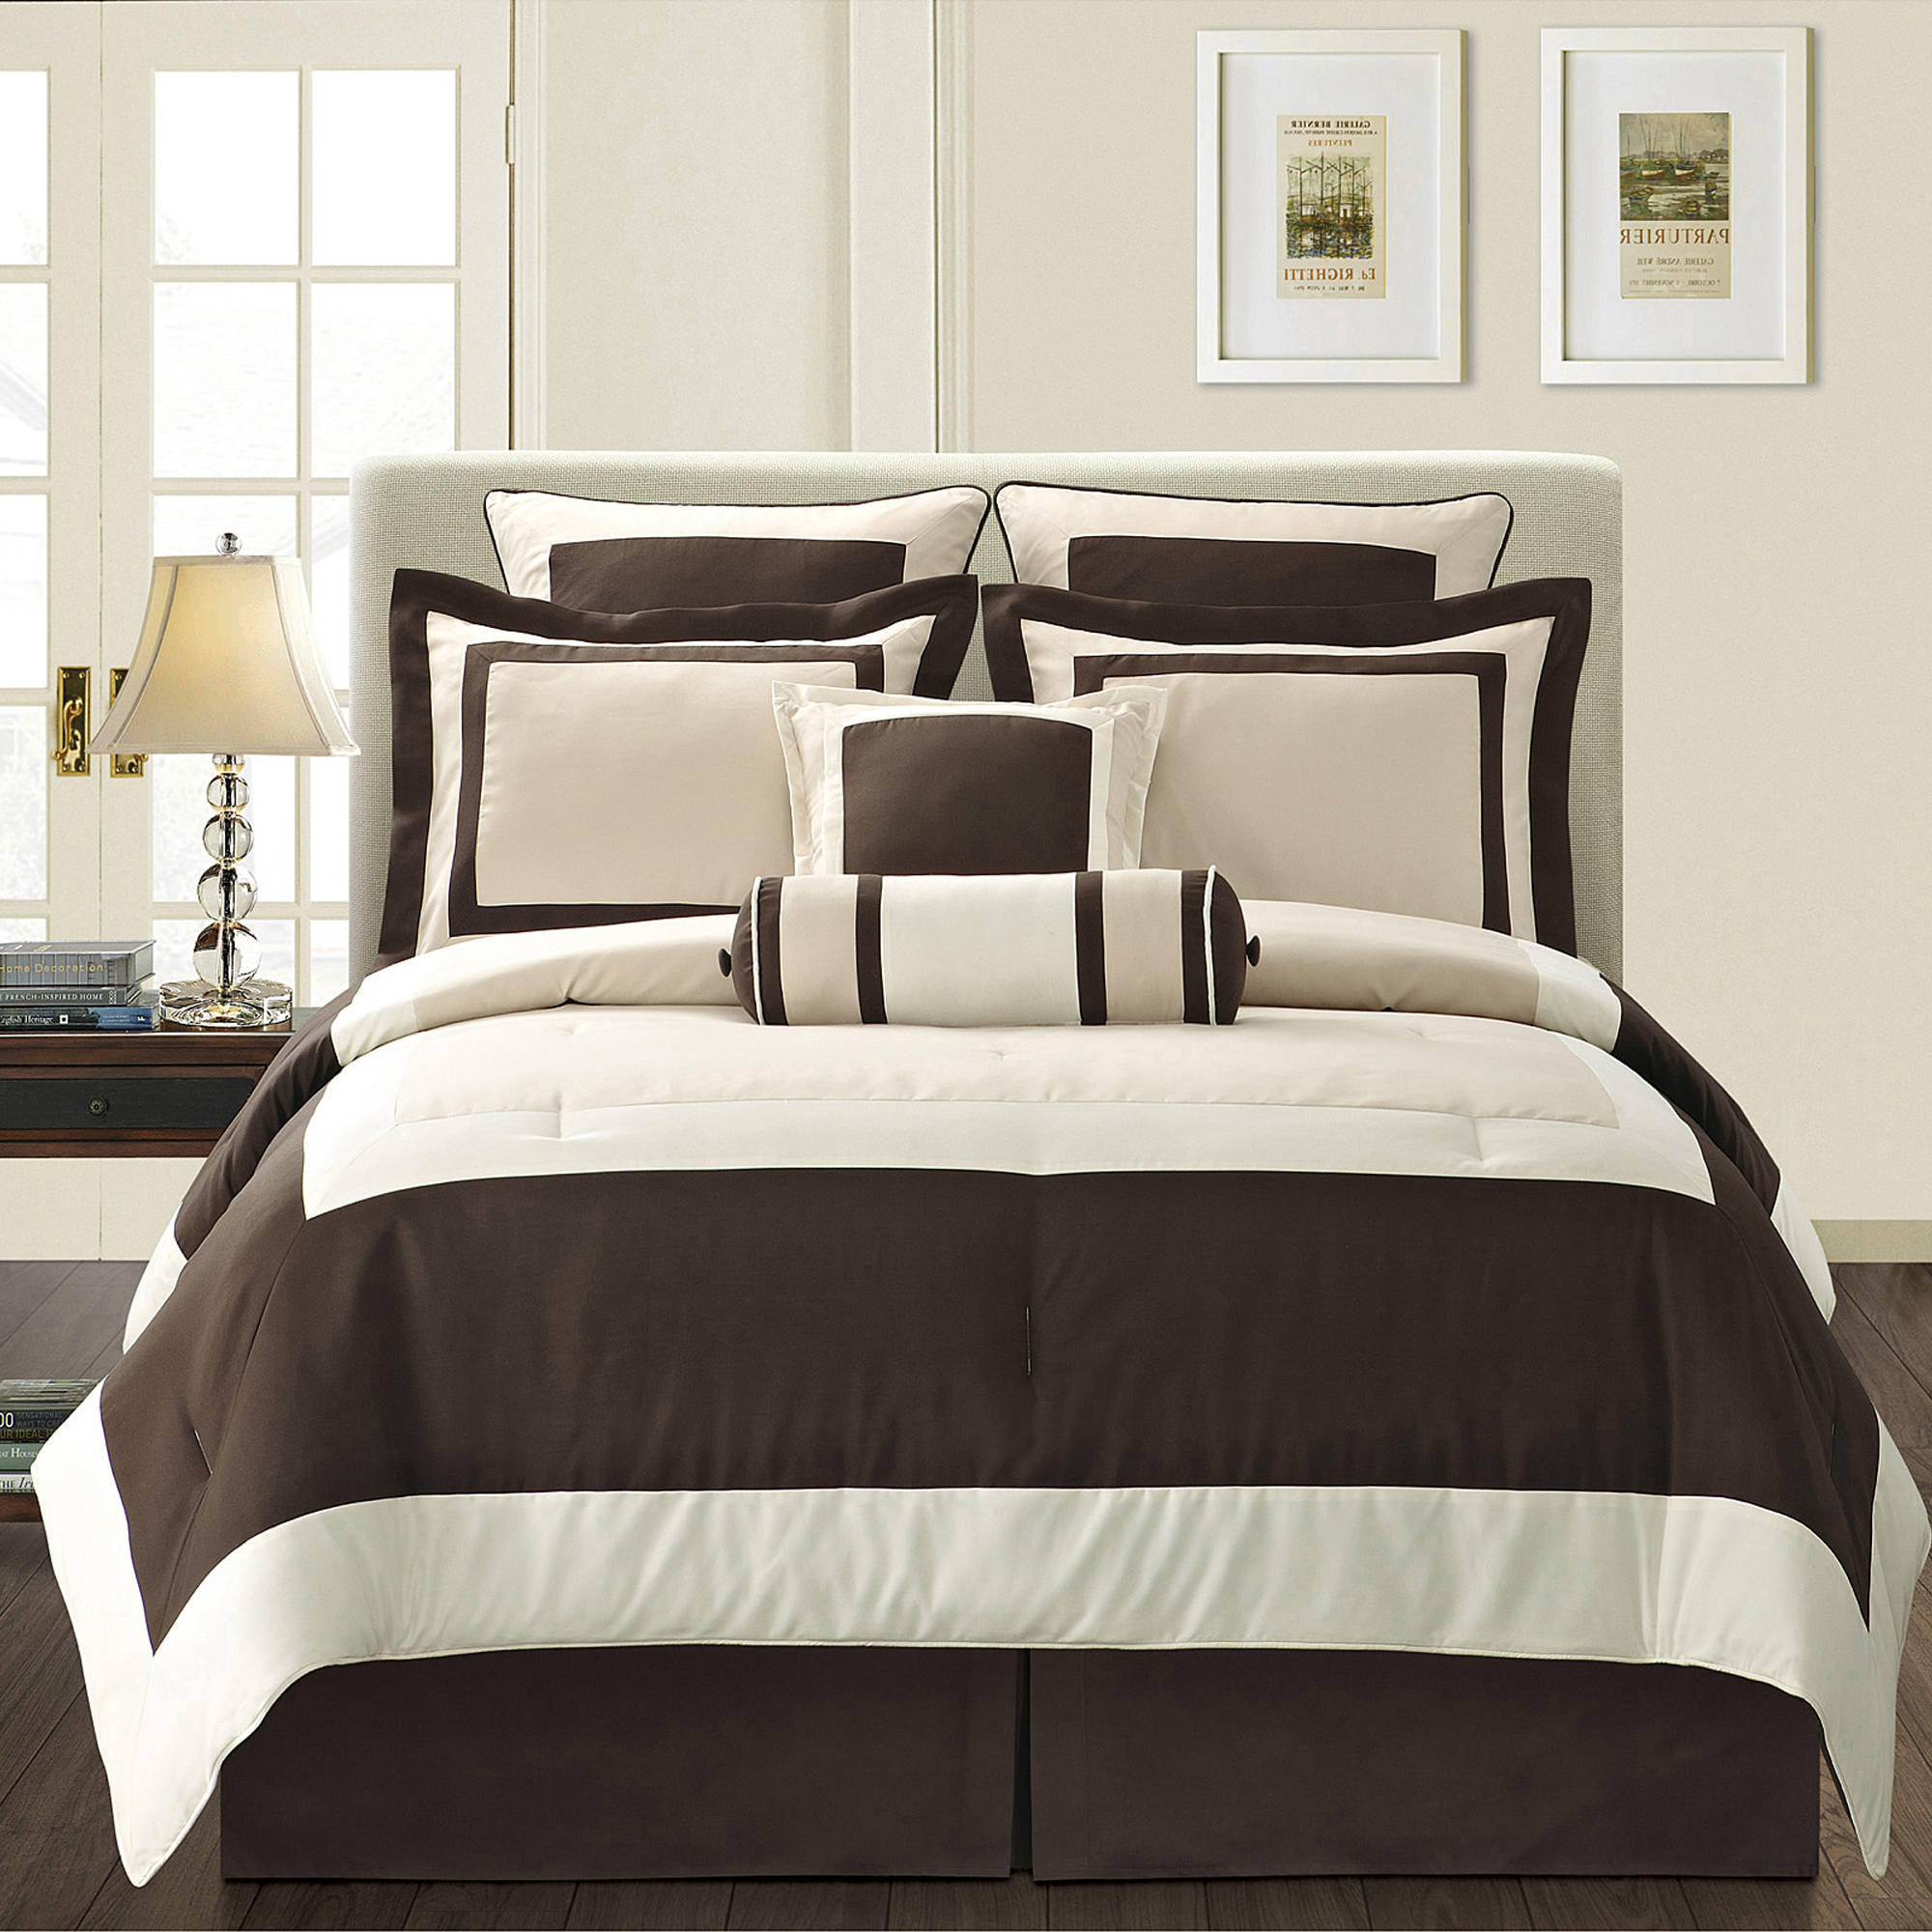 Fashion street gramercy bedding set